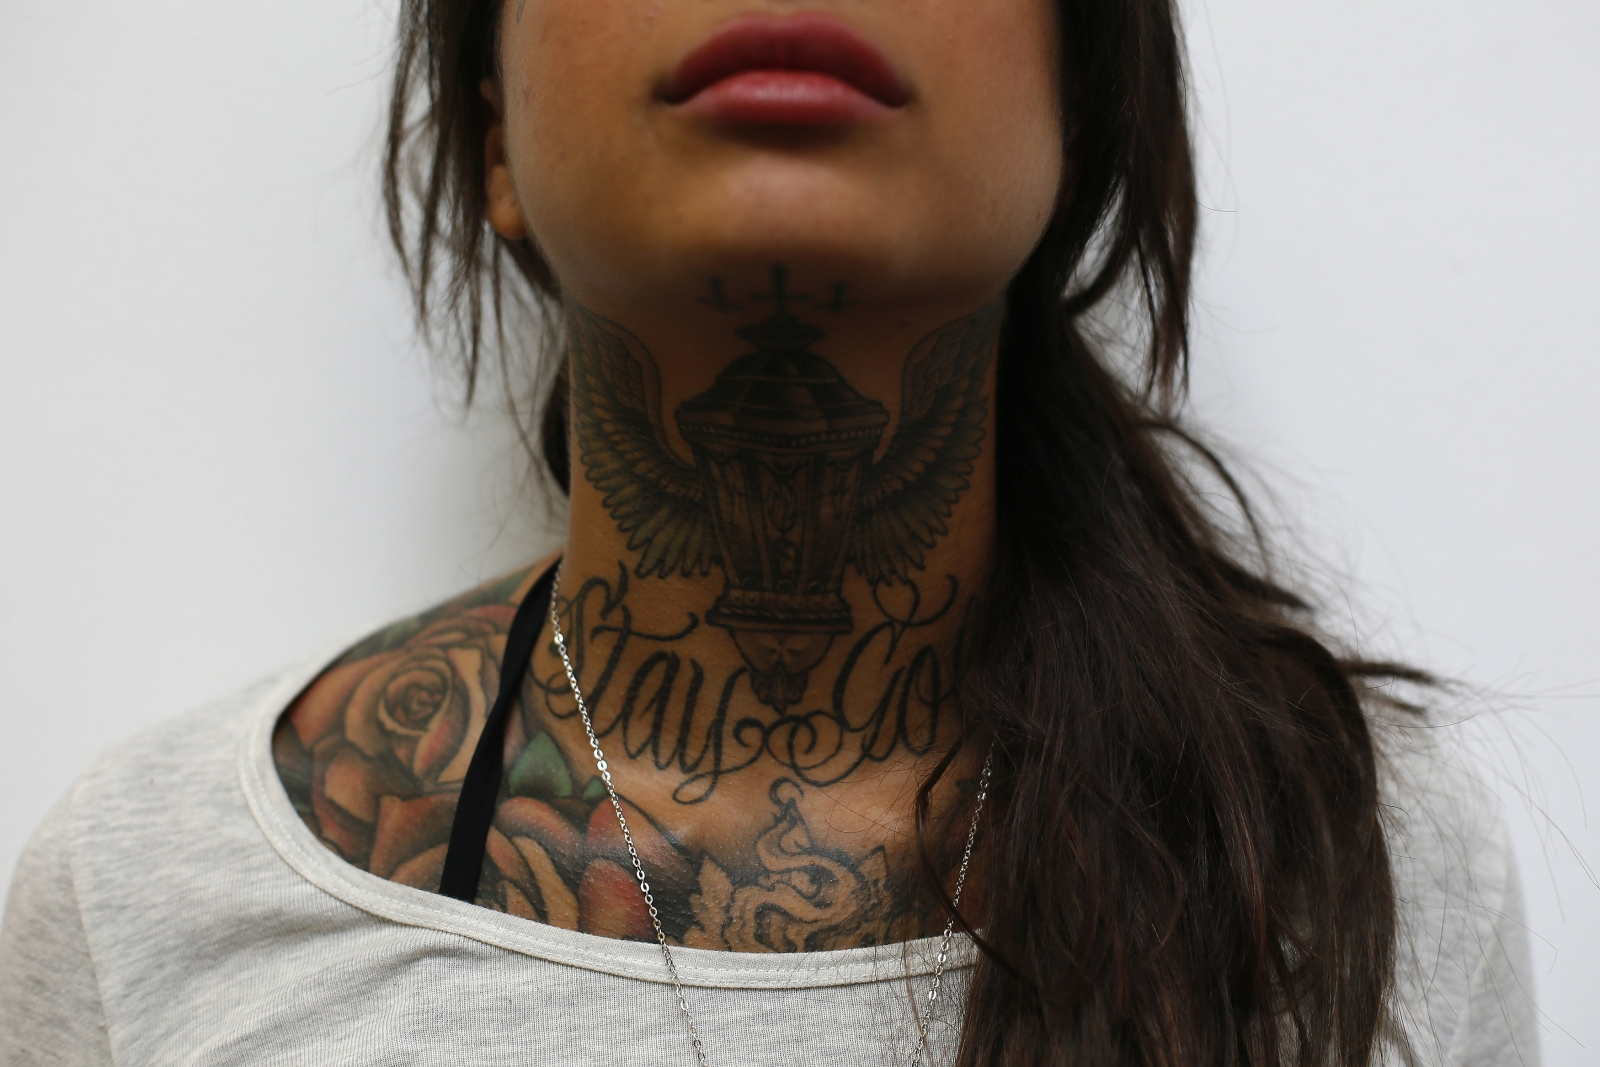 Cleo displays tattoos on her neck during the ninth London Tattoo Convention in London September 27, 2013